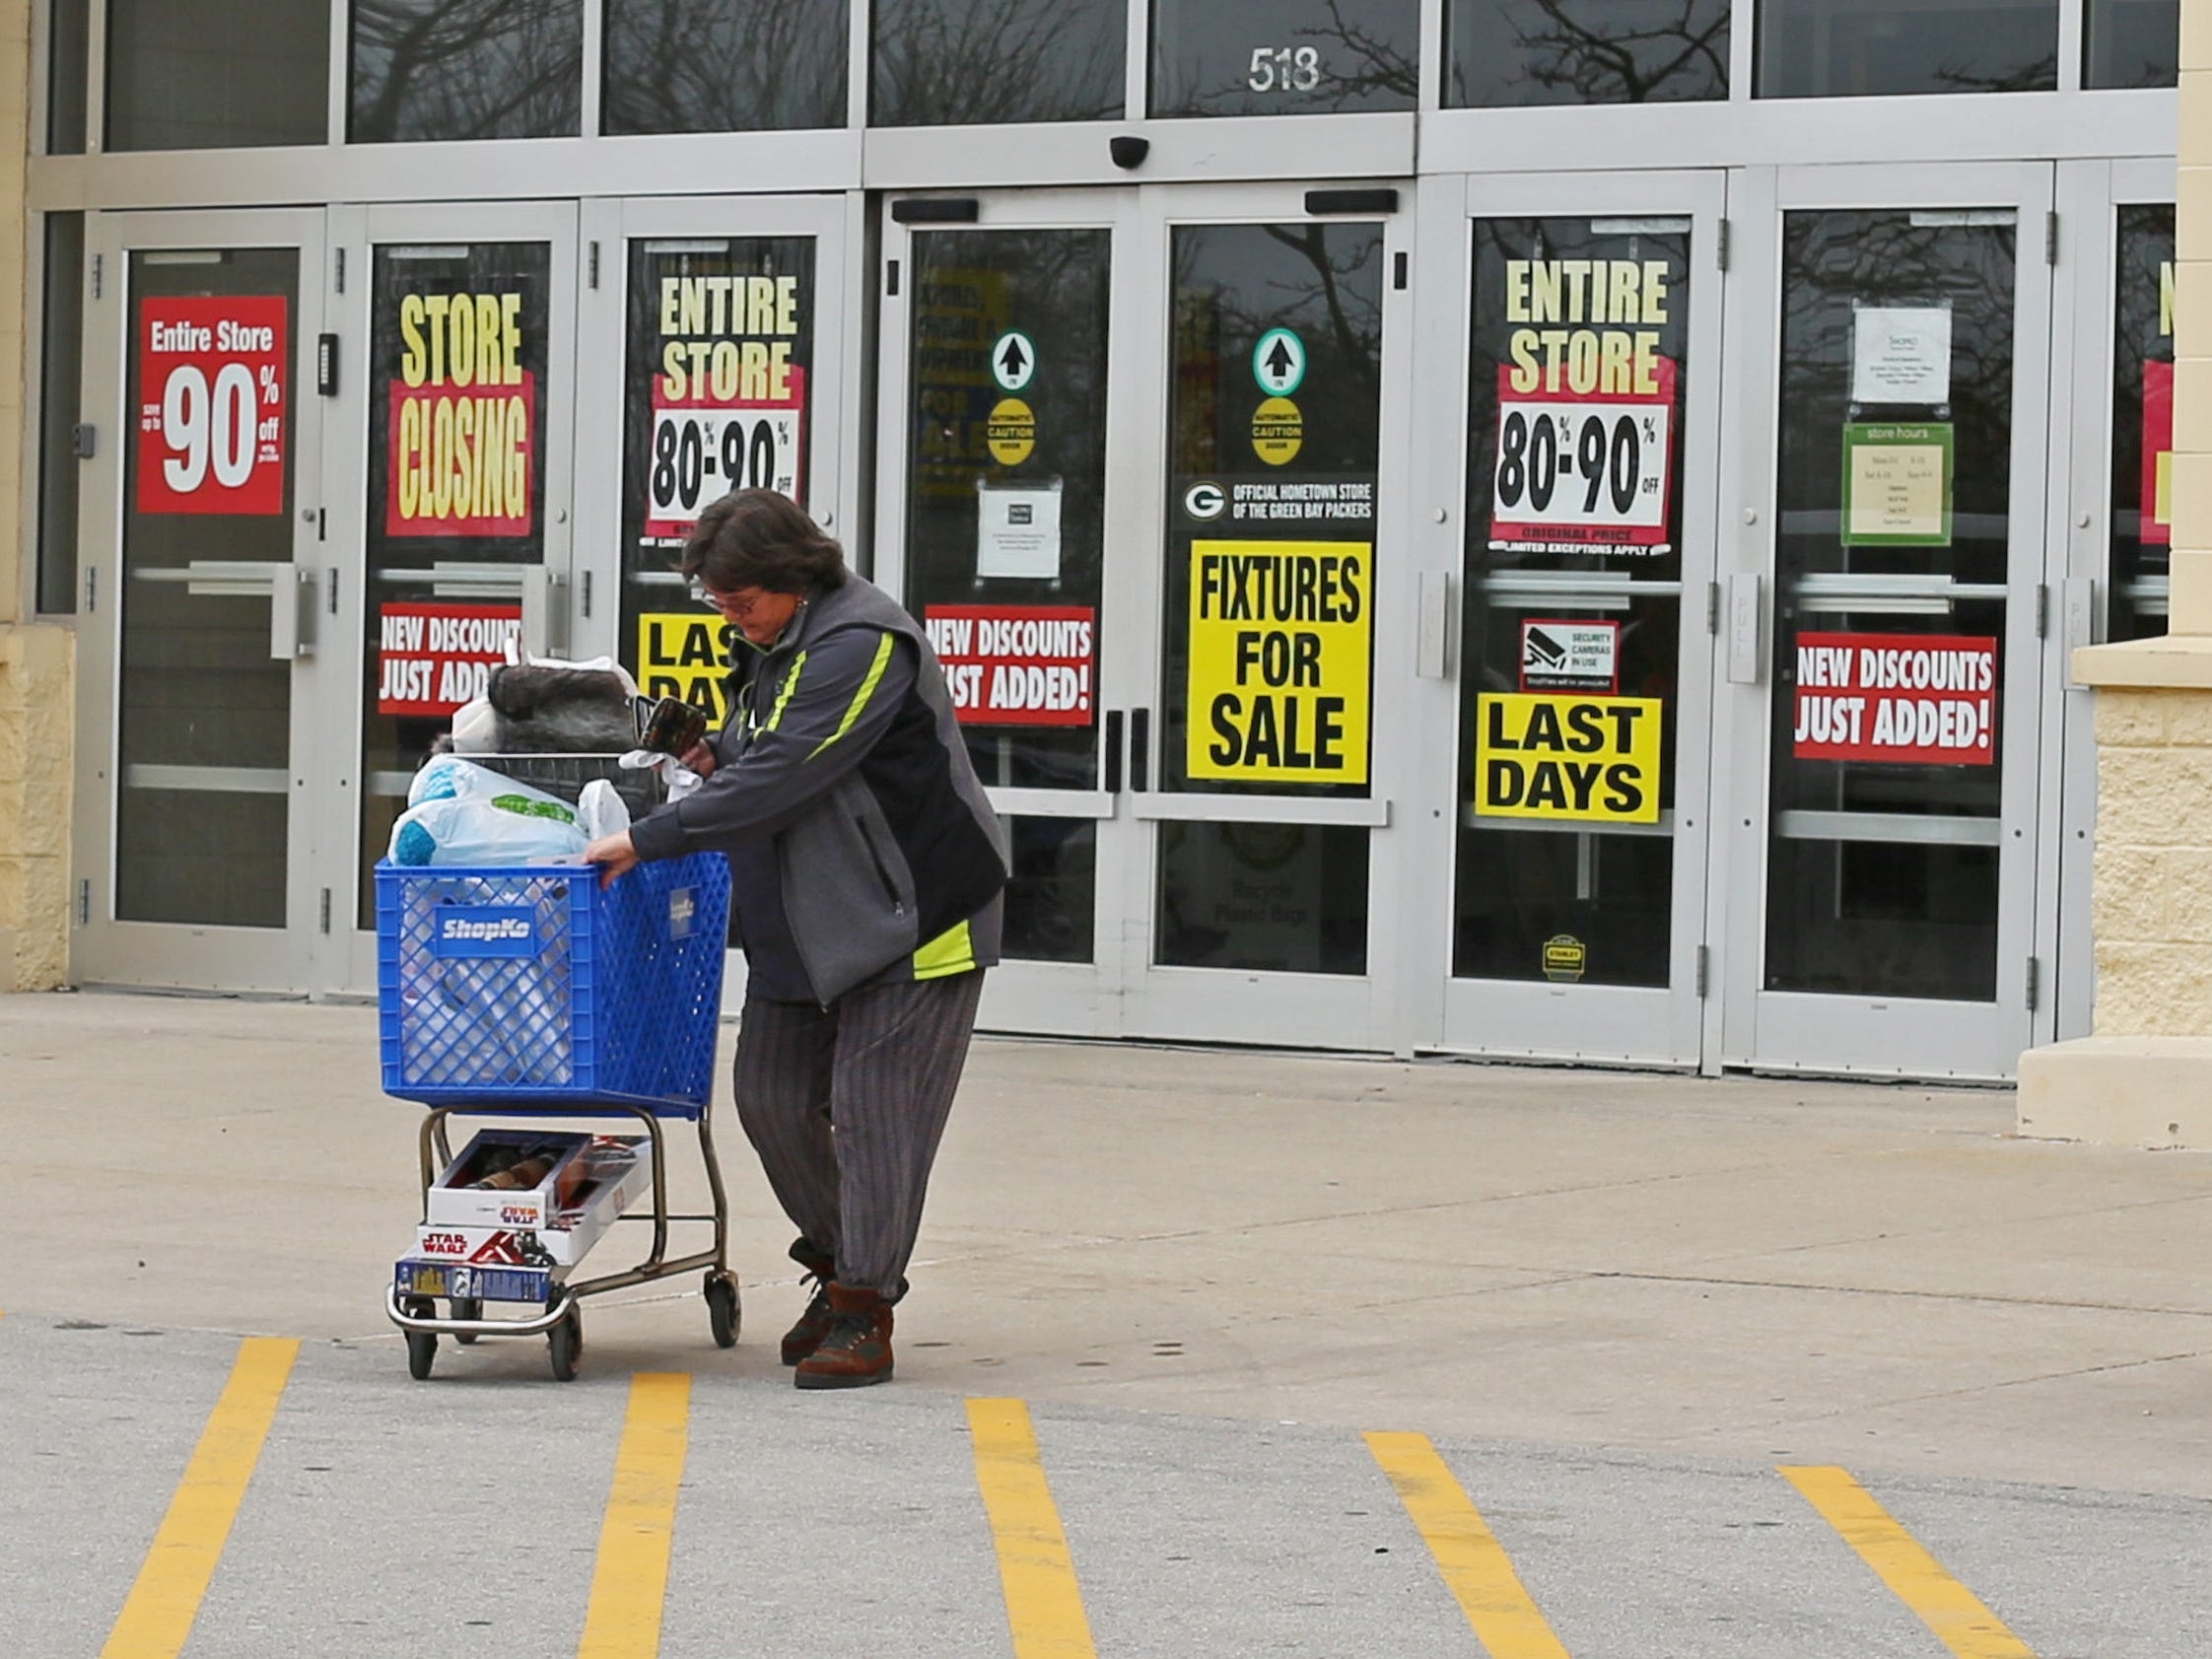 """Susan Weiss of Sheboygan pushes her cart of merchandise after shopping during the store closing sale at ShopKo, Saturday, May 11, 2019, in Sheboygan, Wis. Weiss said, """"I really liked ShopKo and over the years I got some really good deals.  I am going to miss  it.  It was really fun today. I saved $497 saved and paid $131."""""""